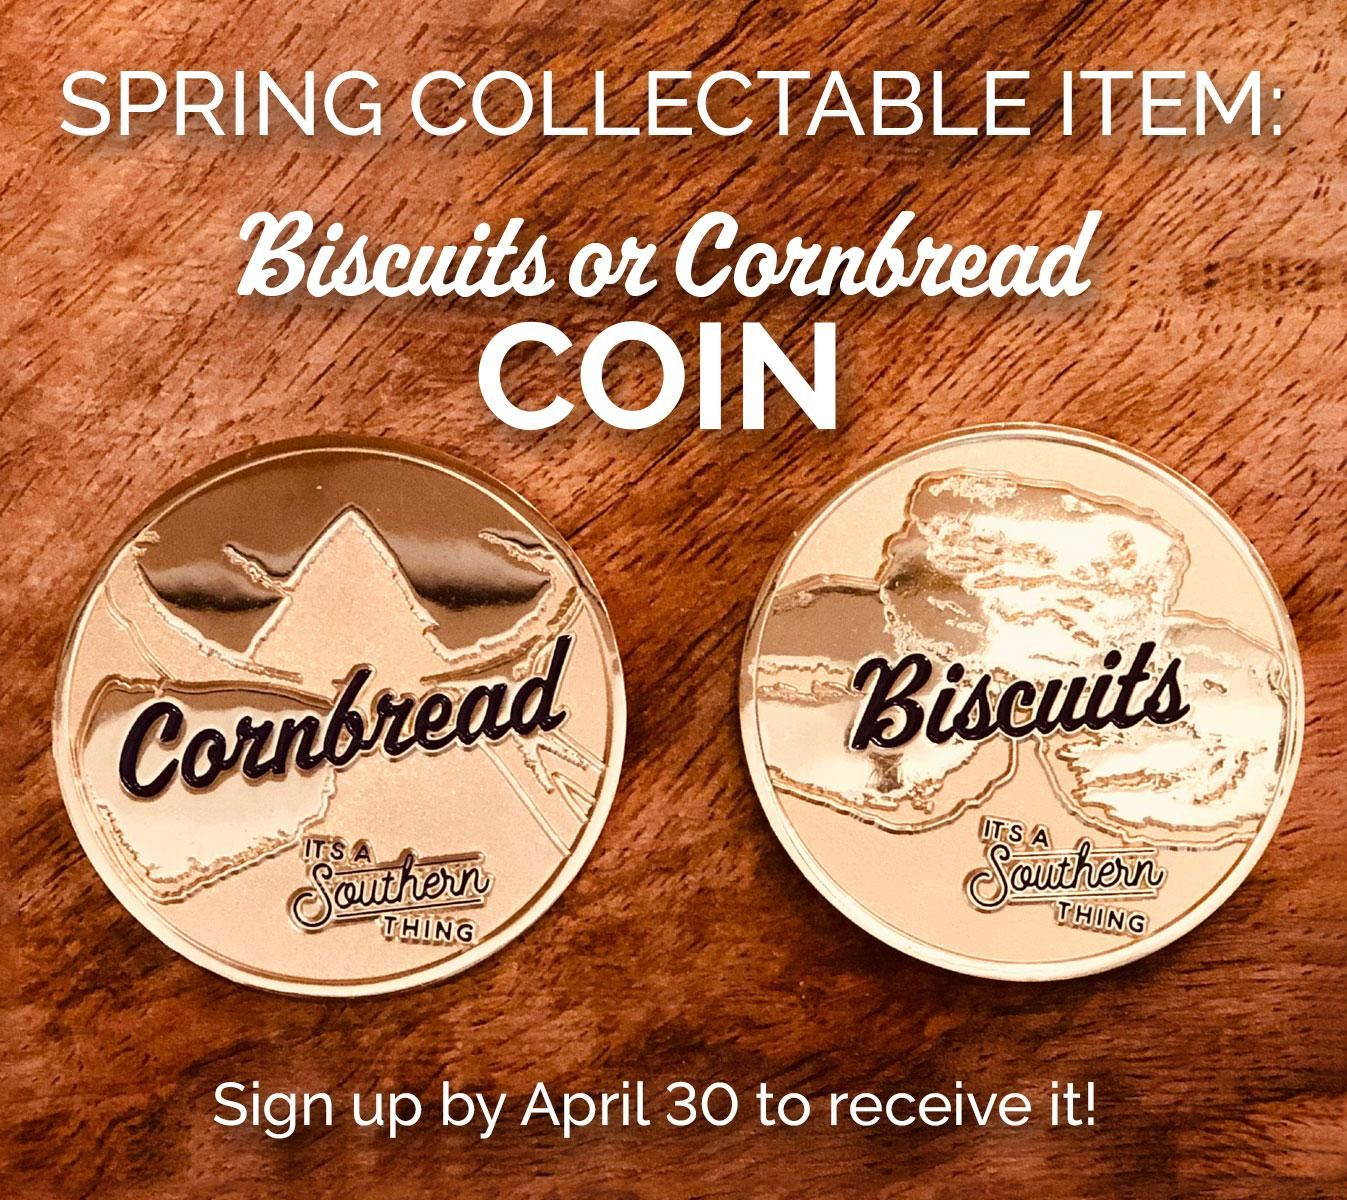 Biscuits or cornbread coin